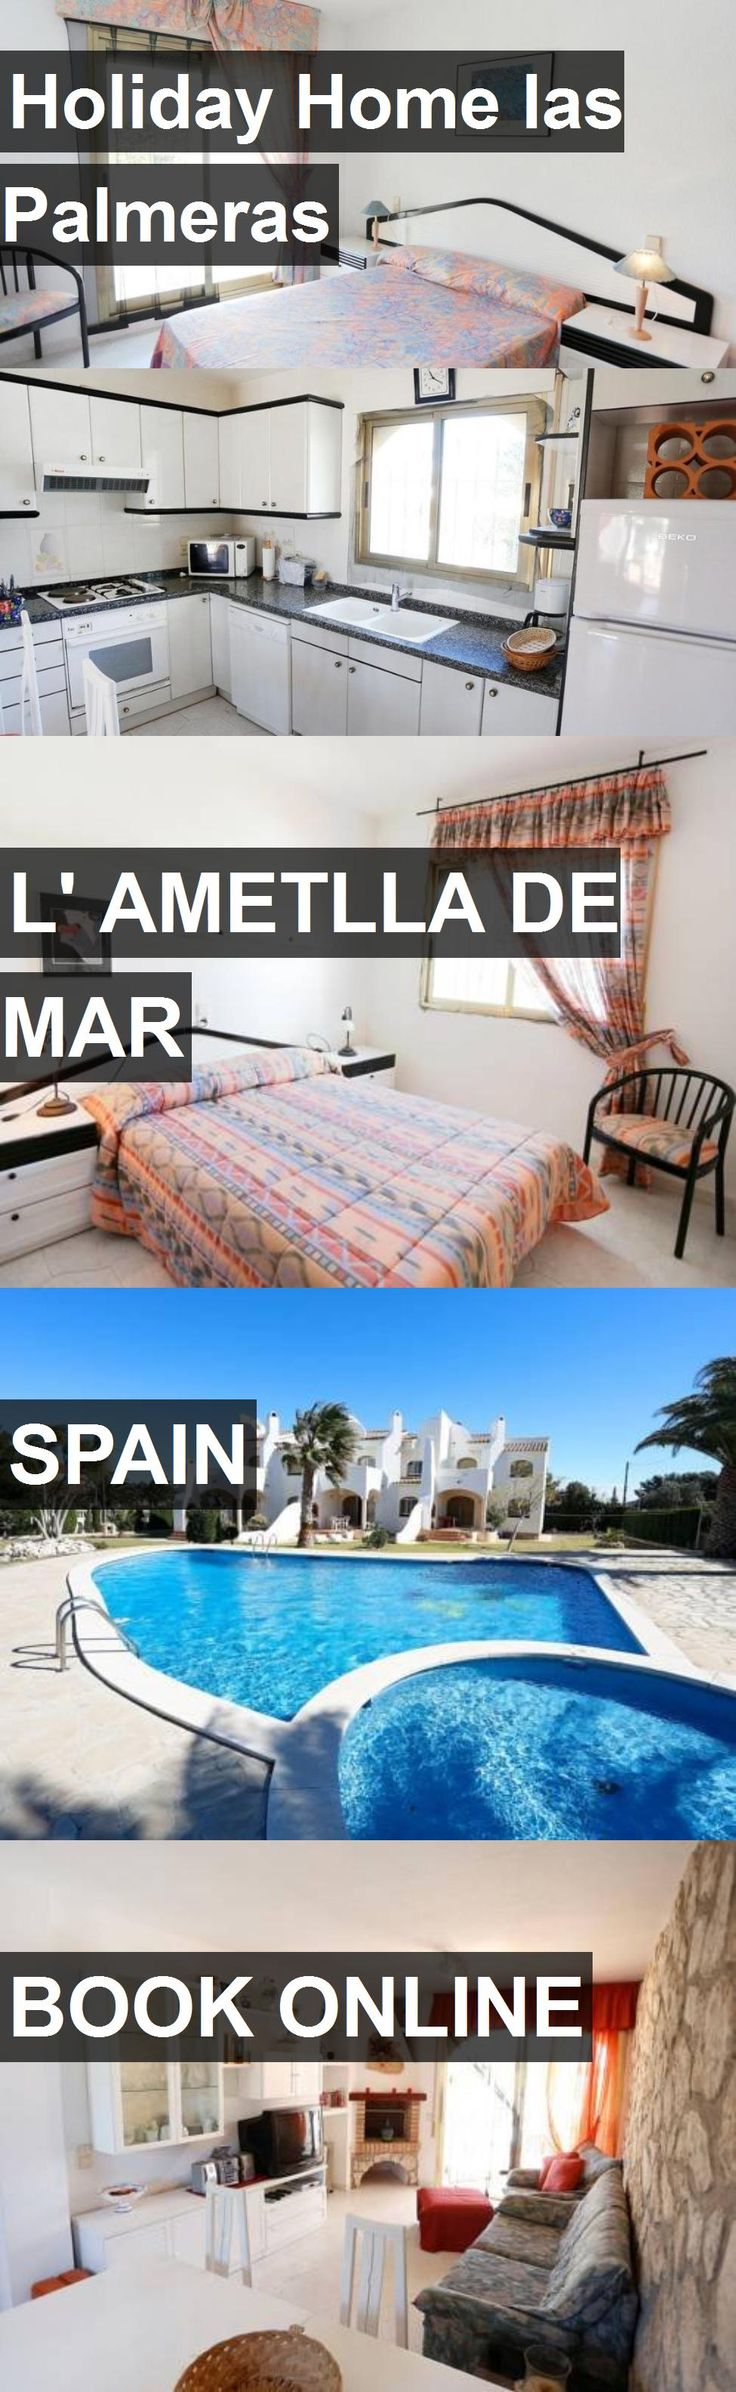 Hotel Holiday Home las Palmeras in l' Ametlla de Mar, Spain. For more information, photos, reviews and best prices please follow the link. #Spain #l'AmetlladeMar #travel #vacation #hotel